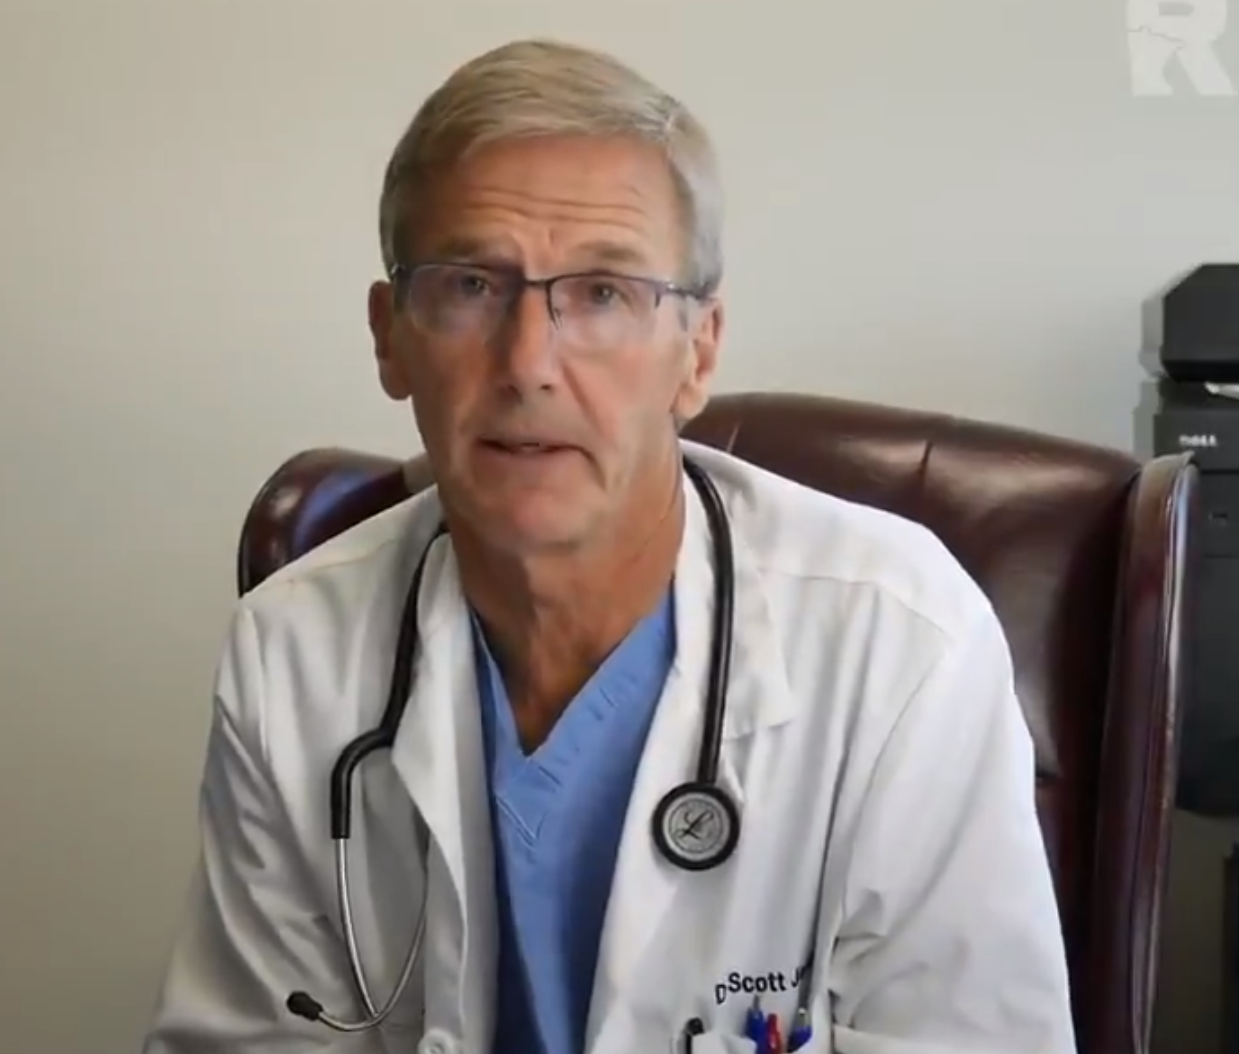 Minnesota Doctor And State Senator Who Openly Discussed Covid-19 Numbers Is Now Being Investigated